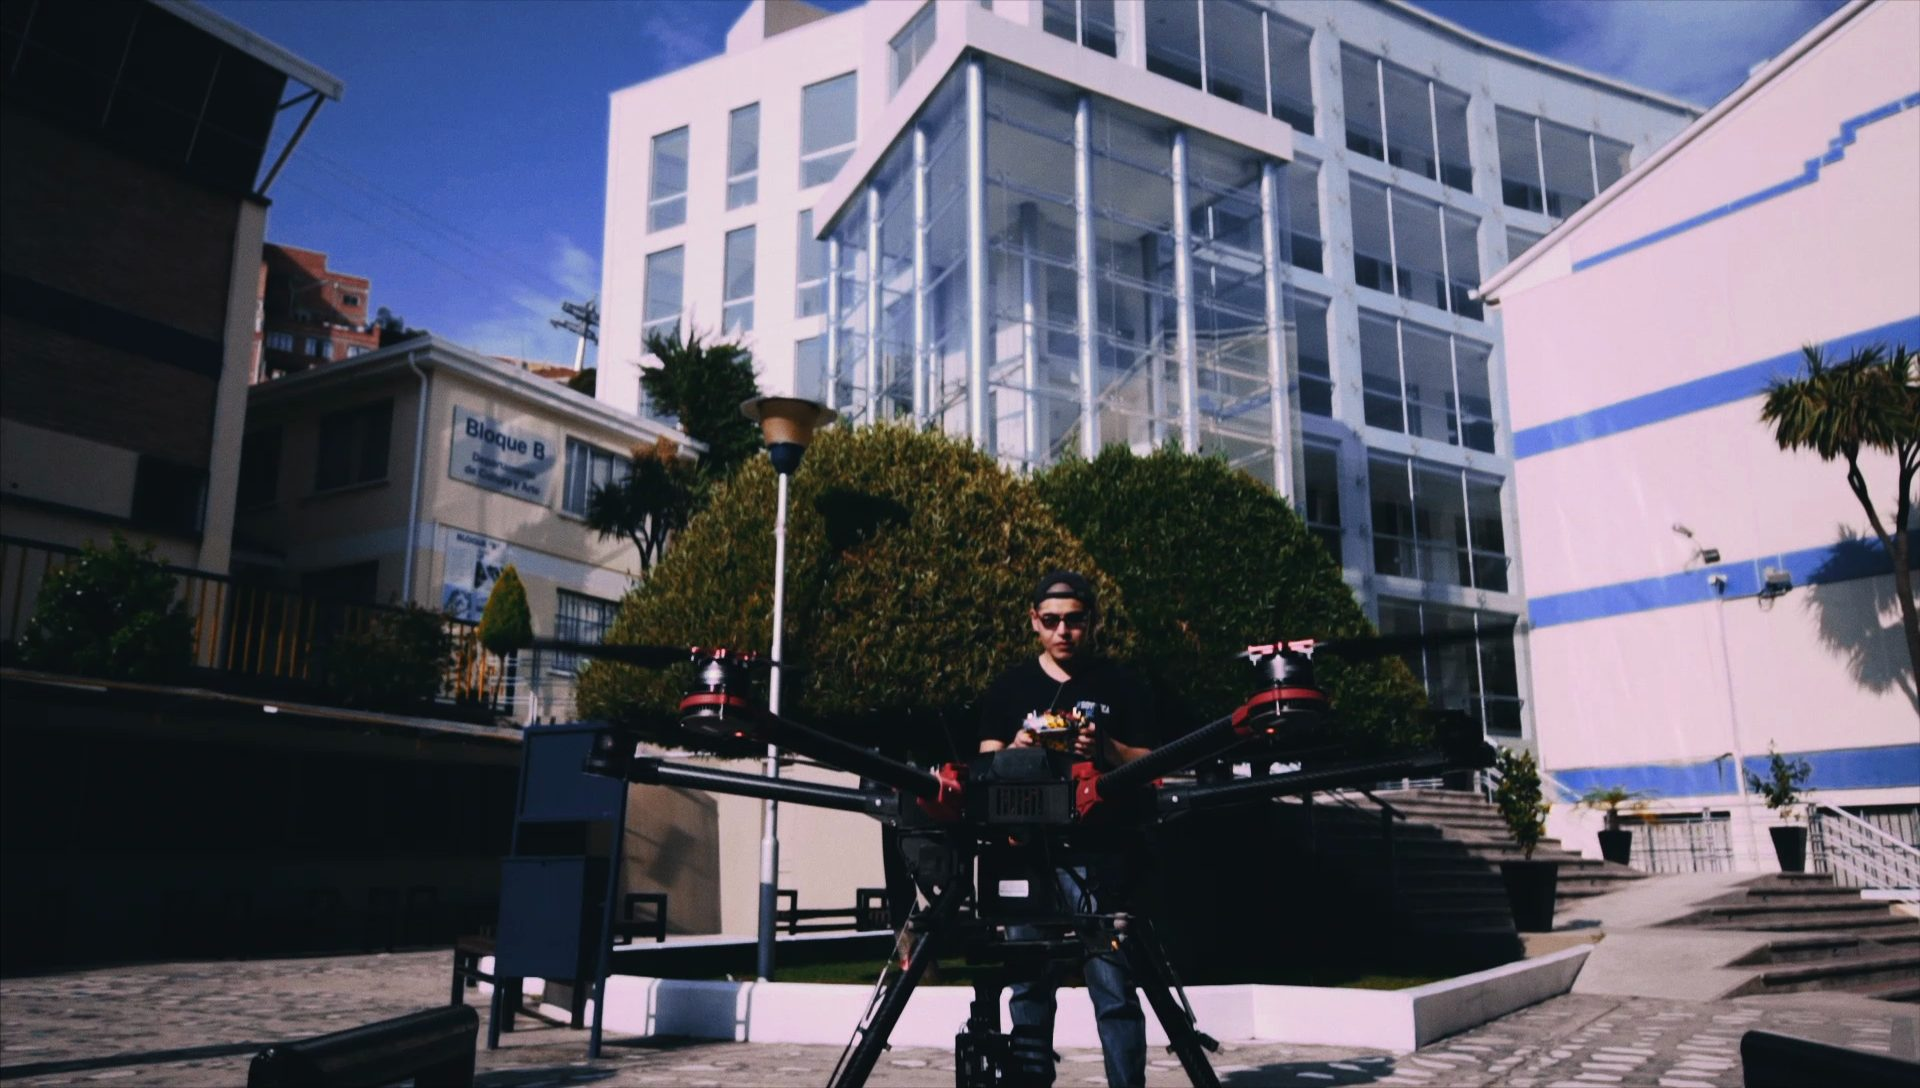 Marco and his drone